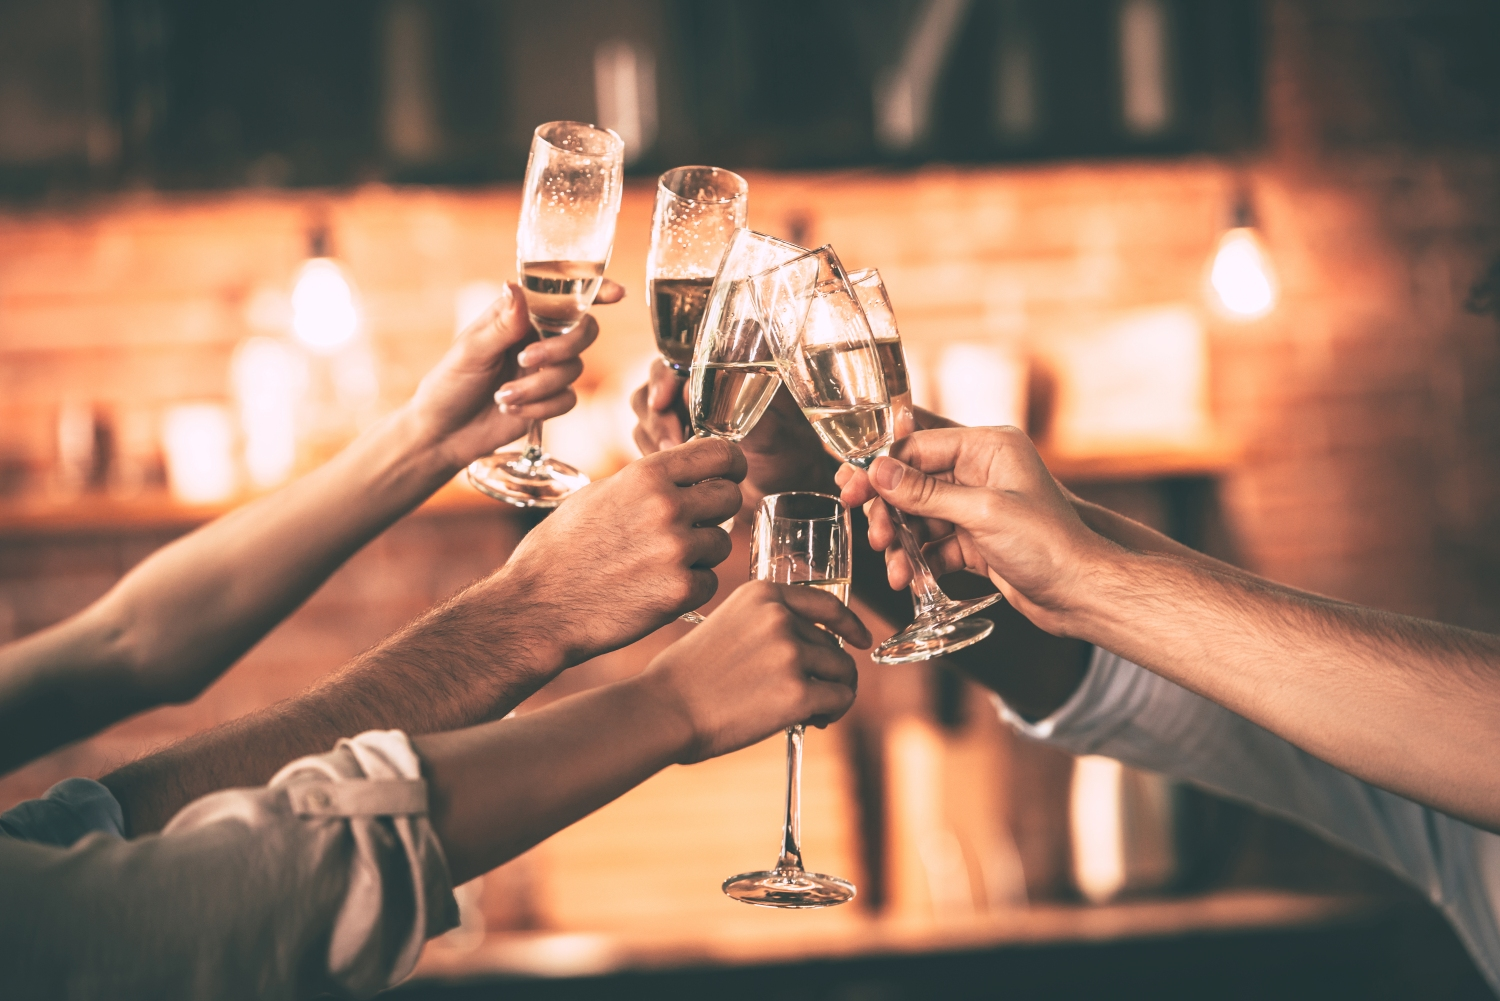 Restaurants Open On Christmas Day In West Bloomfield, Mi 2020 Here Are Chain Restaurants In Michigan Open On Christmas Day – CBS